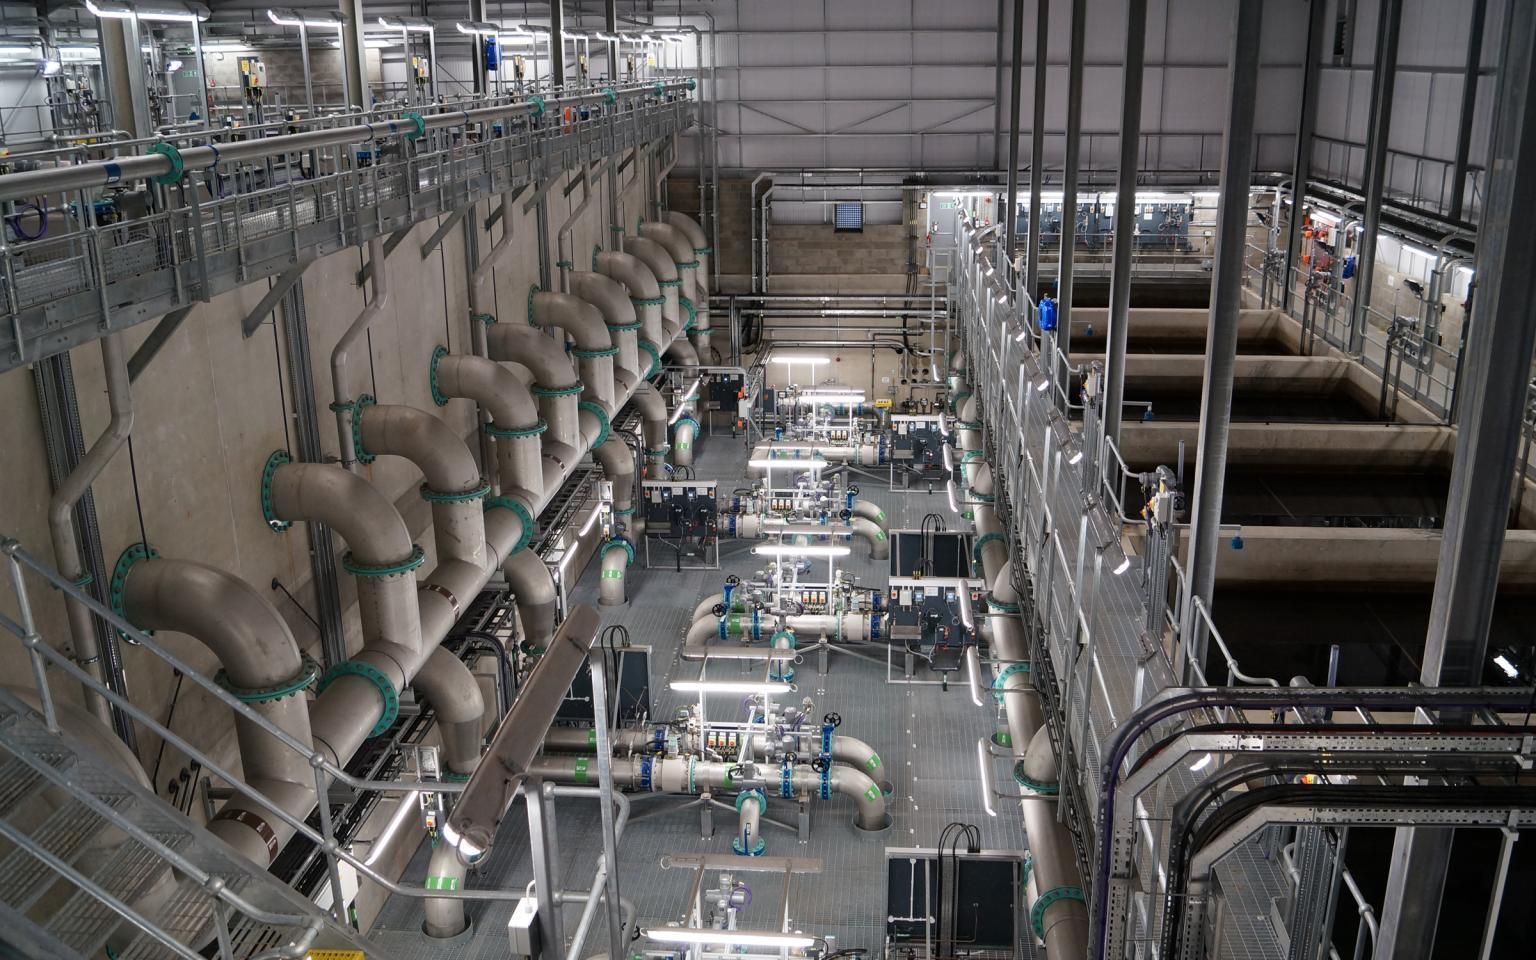 Dee Valley Water's £17m flagship water treatment works at Llwyn Onn, North Wales, is controlled from inlet-to-outlet by a Mitsubishi Electric system redundant, Q series modular PLC solution